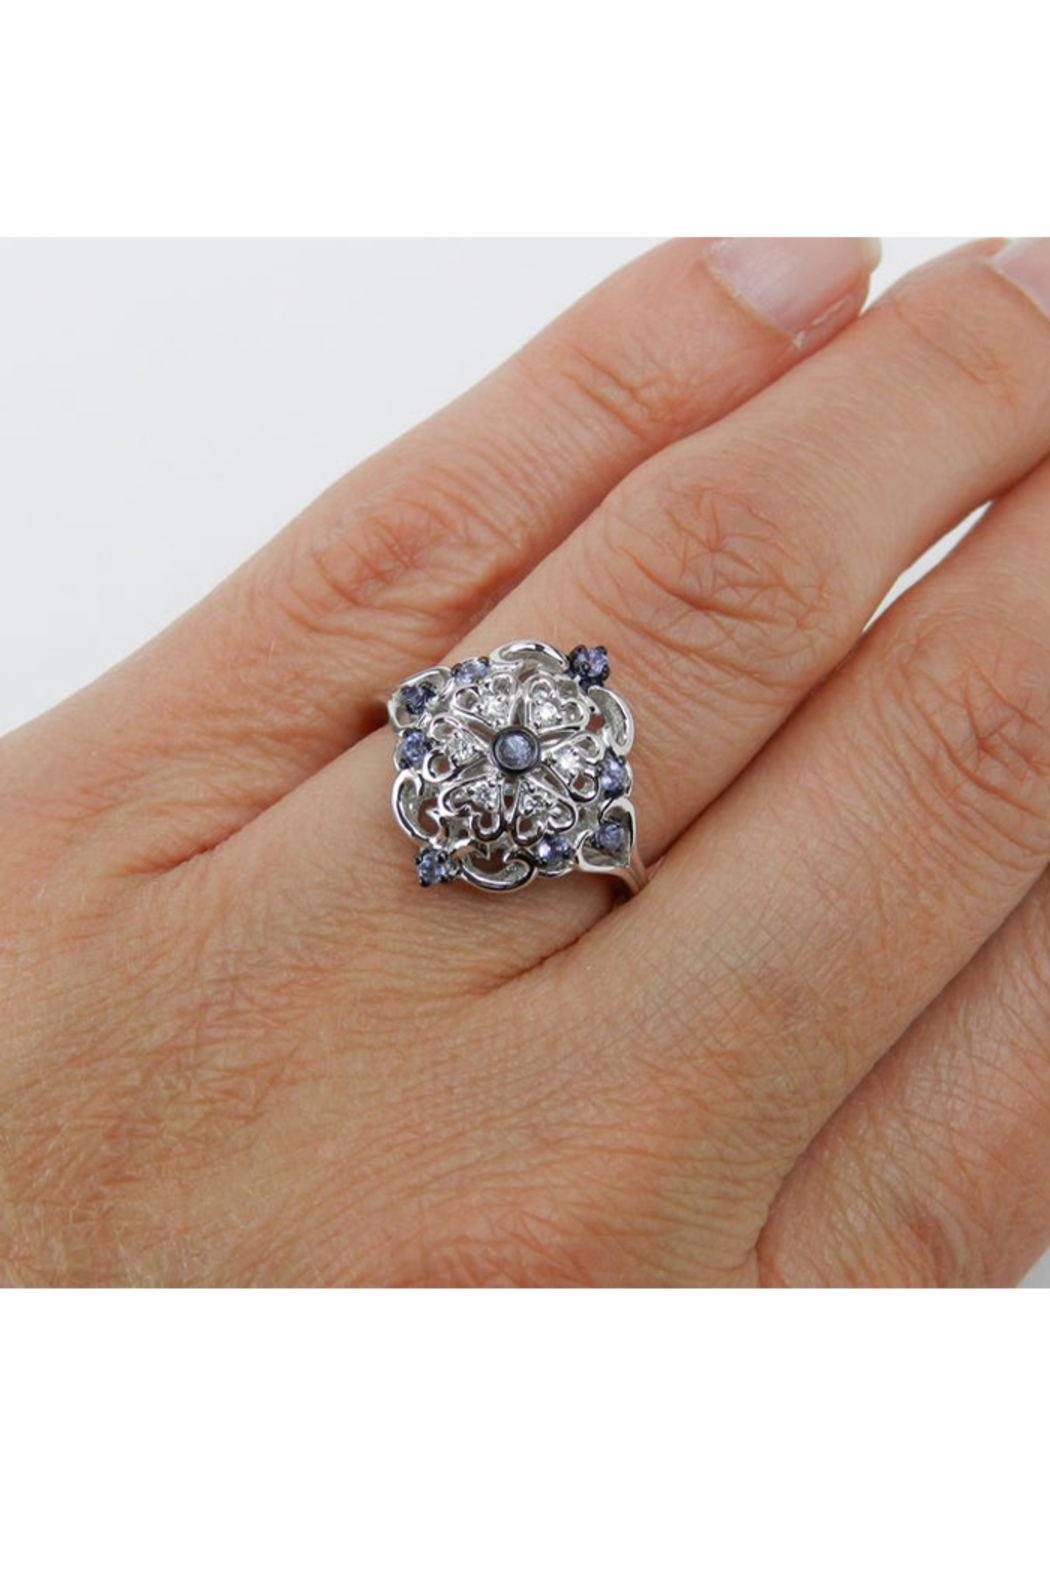 Margolin & Co Vintage Reproduction Style White Gold Diamond and Tanzanite Cocktail Cluster Ring Size 6.75 FREE Sizing - Back Cropped Image